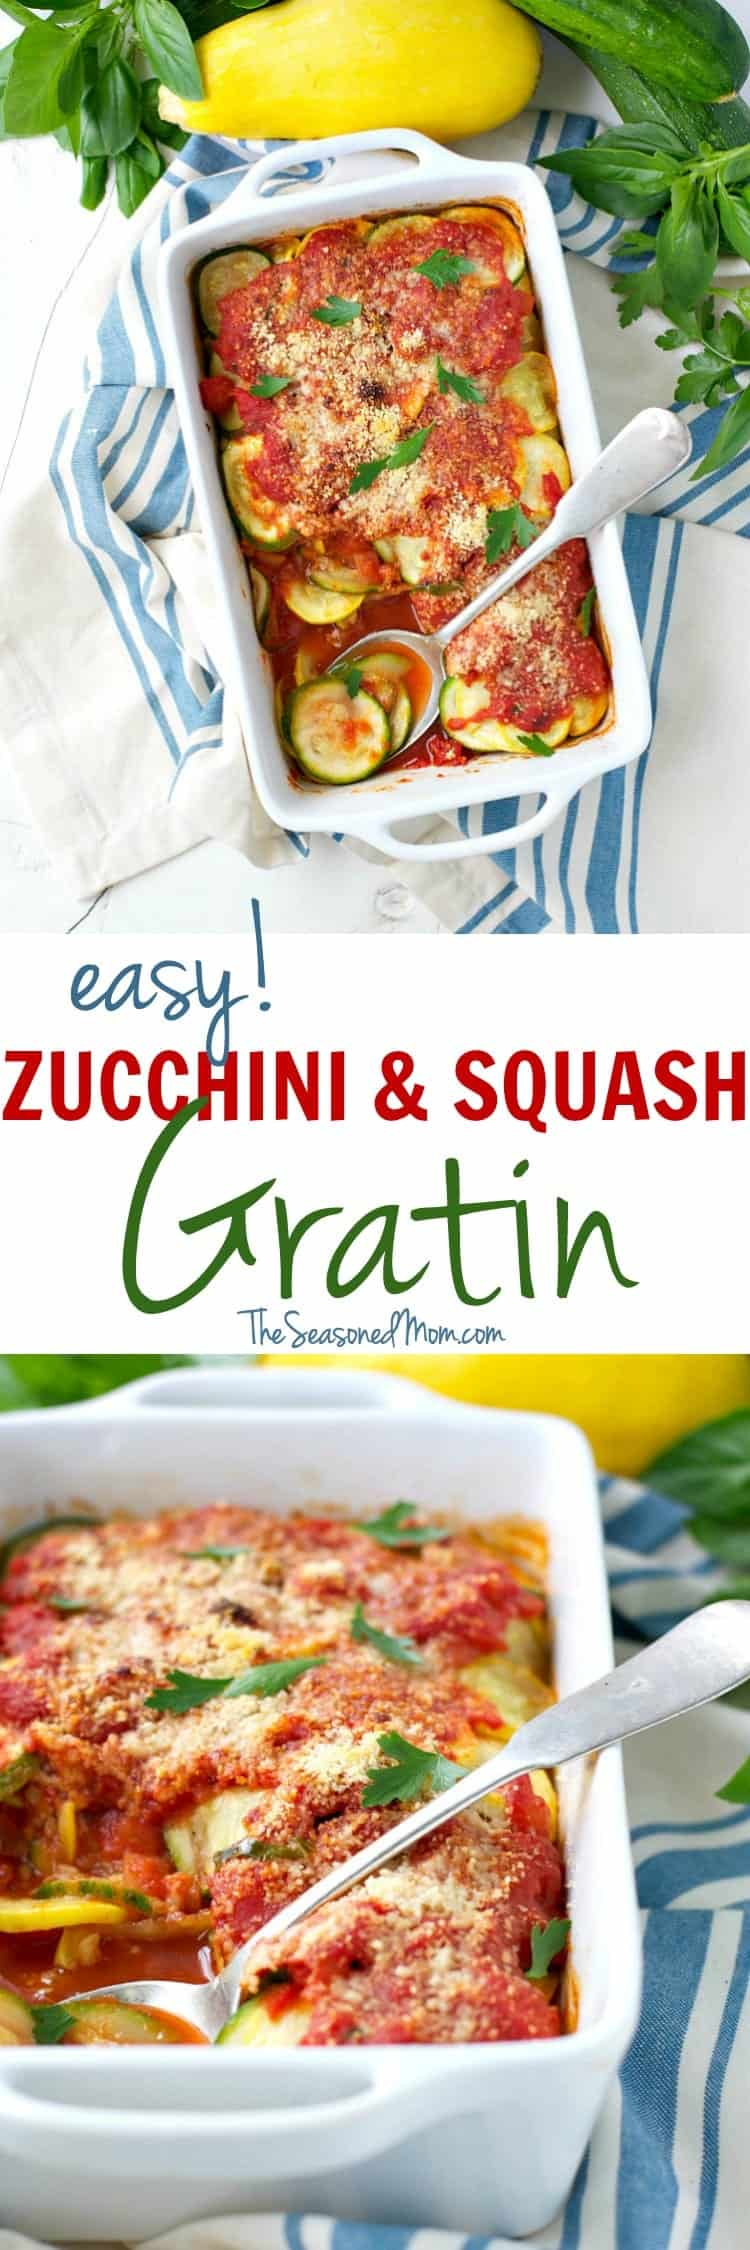 at this time of year, right?! With layers of zucchini, summer squash ...